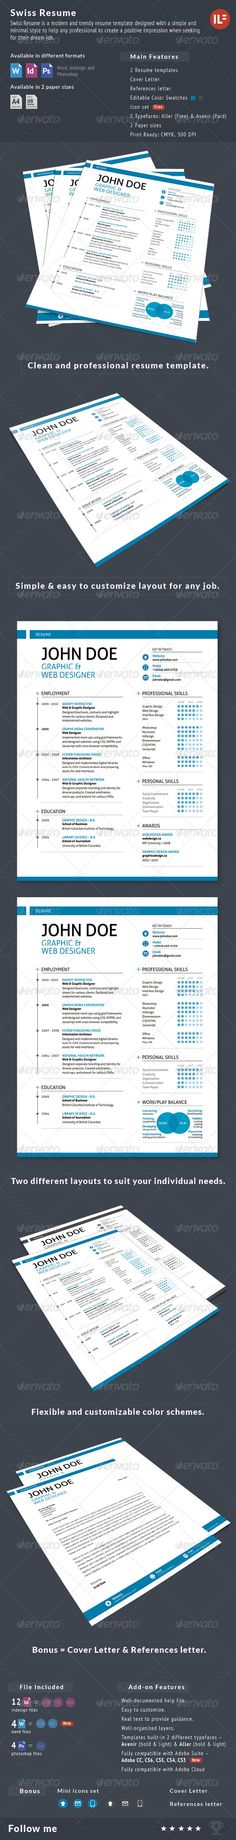 3-Piece Swiss Style Resume set_Purchase : http://graphicriver.net/item/-3piece-swiss-style-resume-set/155832?ref=ThemeTruly